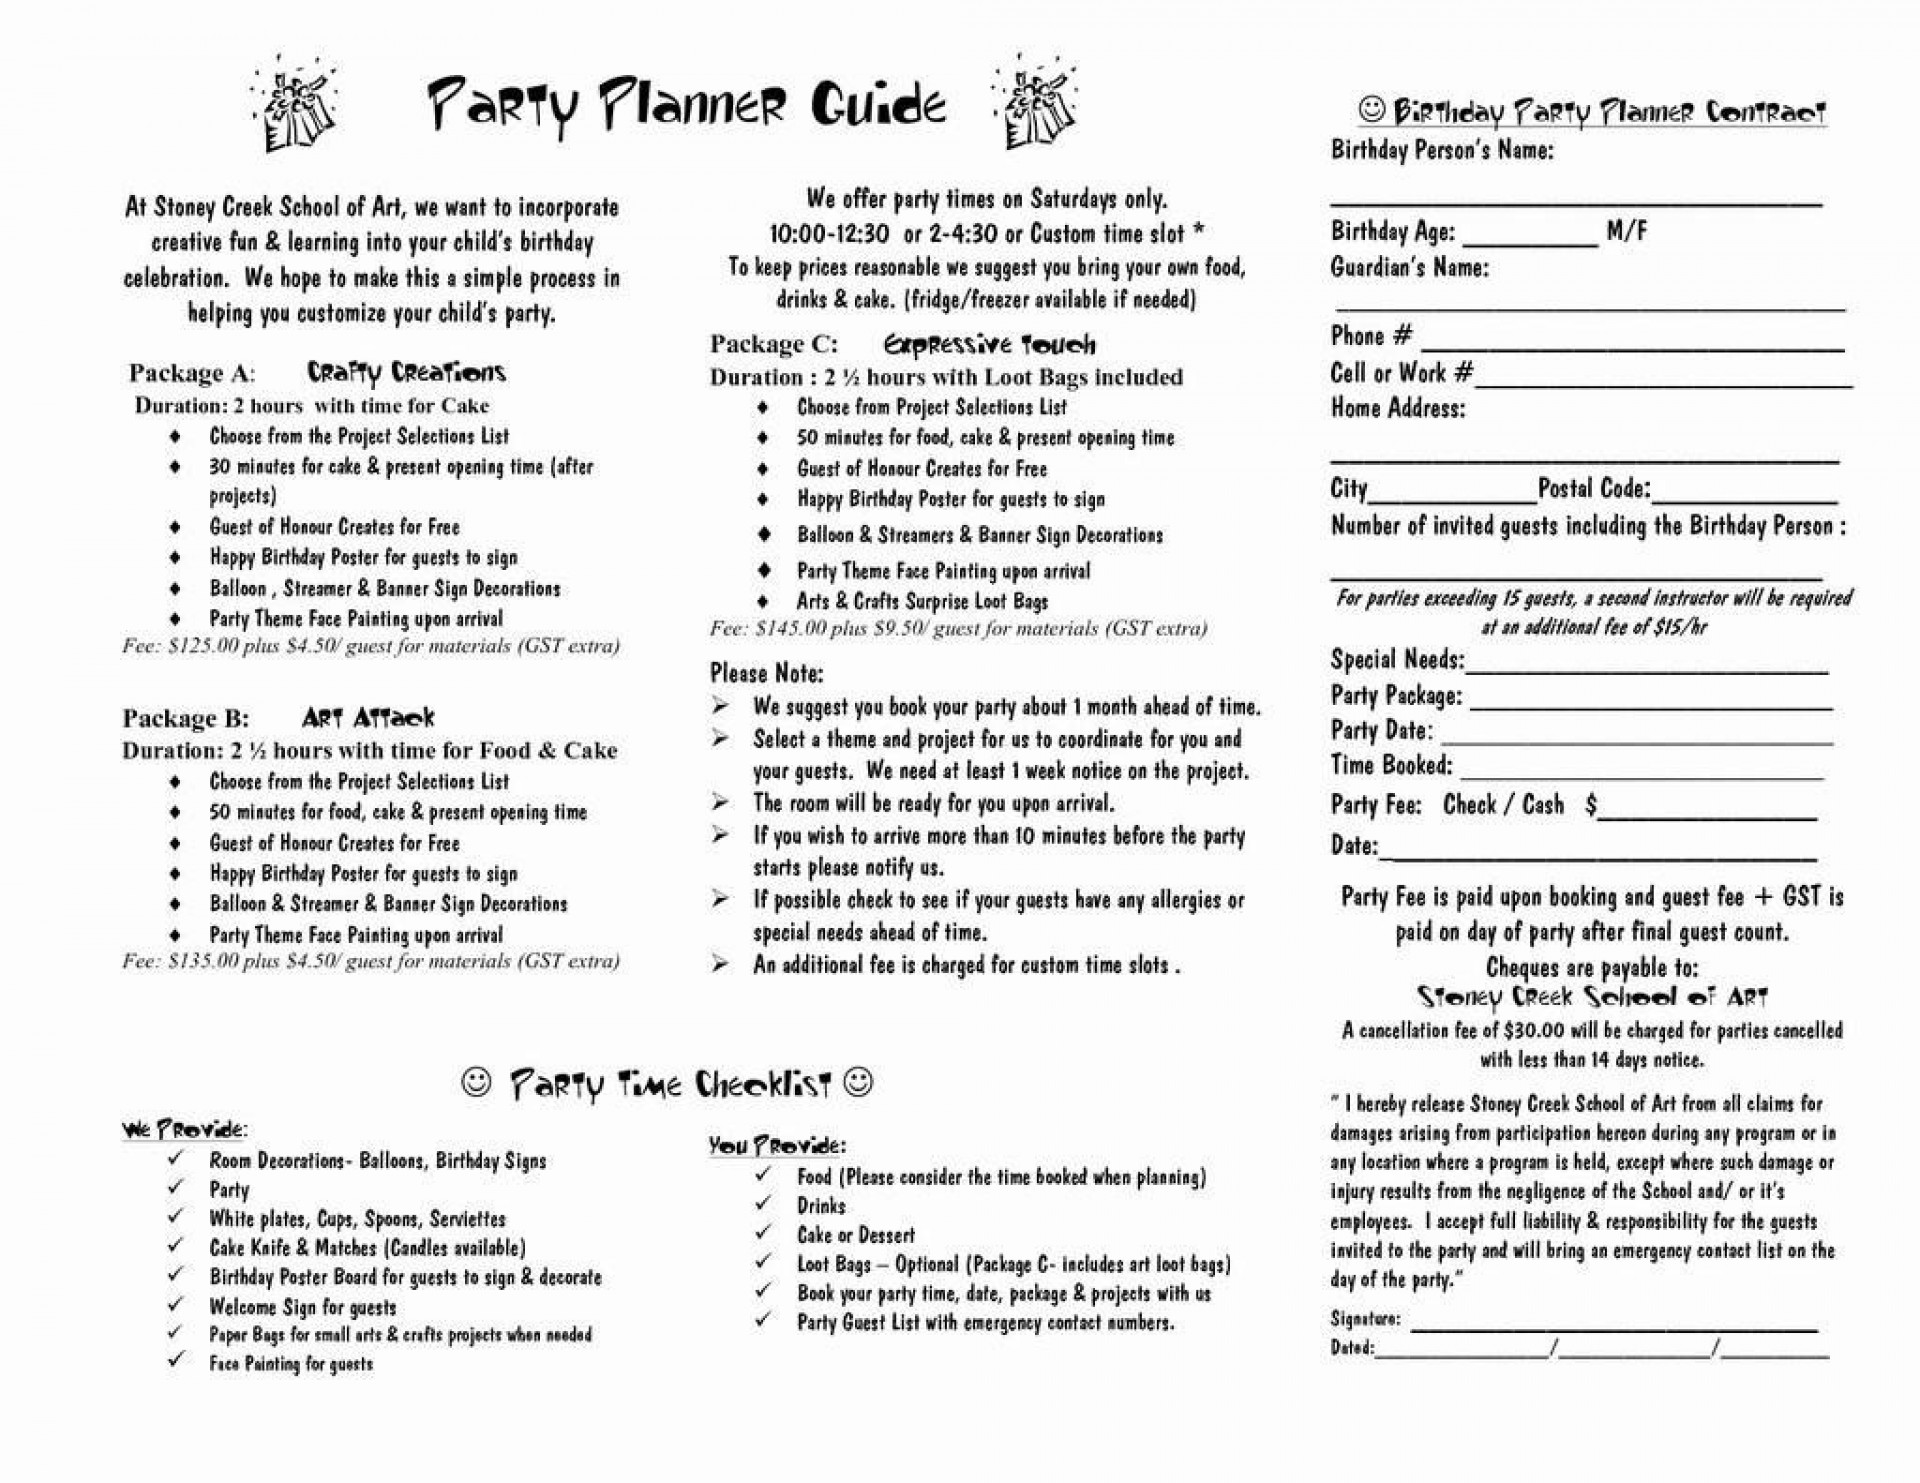 009 Outstanding Event Planner Contract Template Photo  Free Download Planning1920